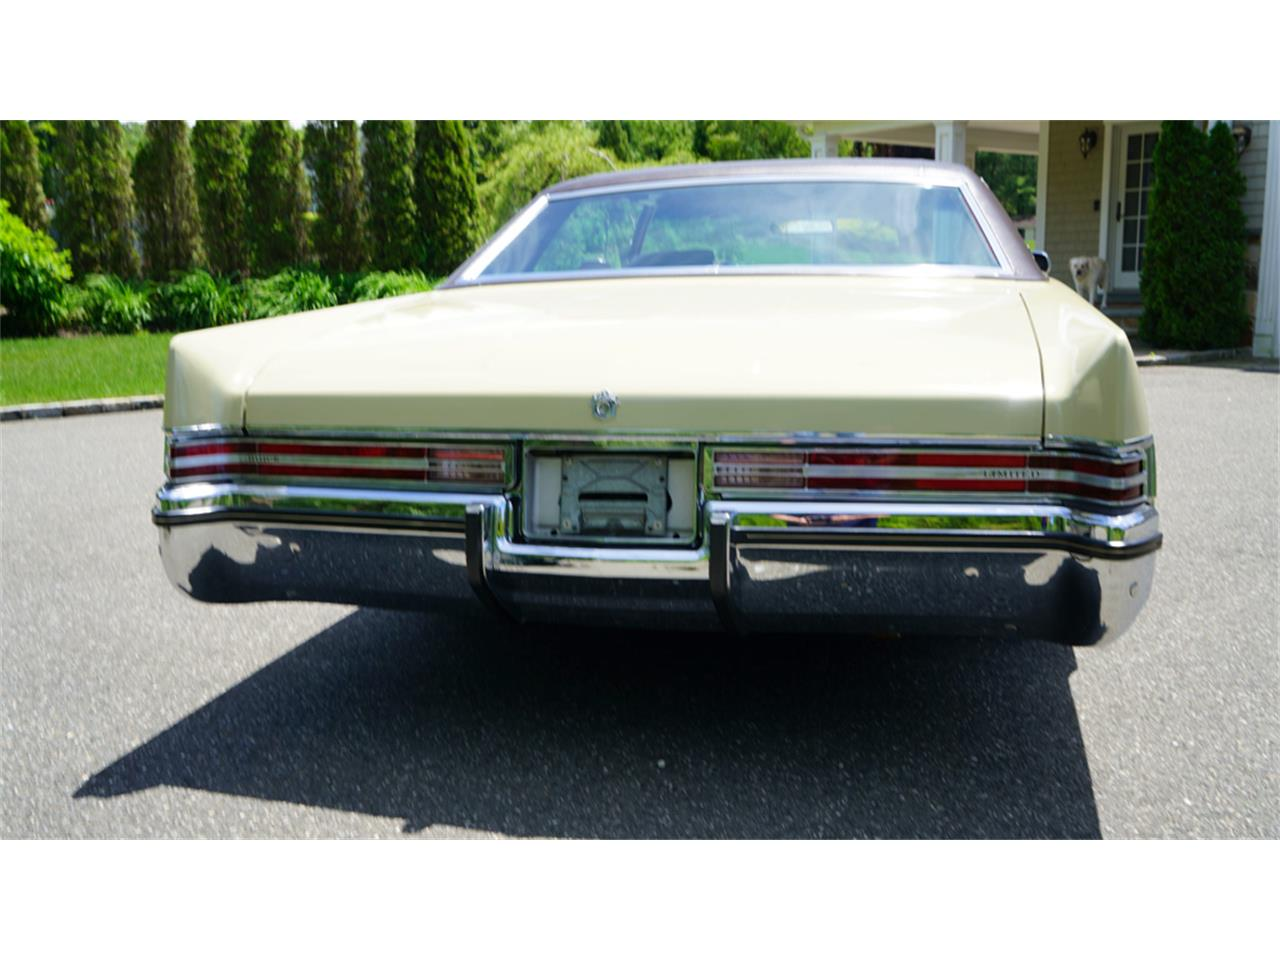 Large Picture of Classic '72 Buick Electra 225 - $32,500.00 - QAJE